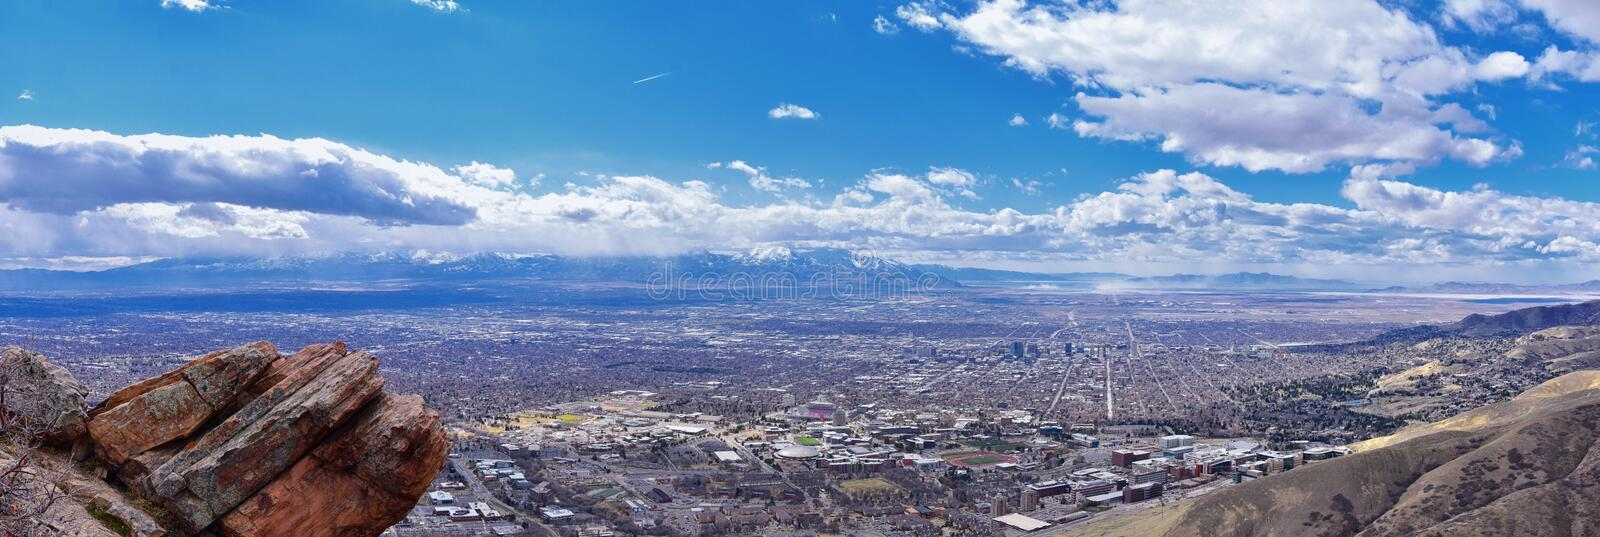 Salt Lake Valley and City panoramic views from the Red Butte Trail to the Living Room, Wasatch Front, Rocky Mountains in Utah. Early spring. Hiking view of royalty free stock photo